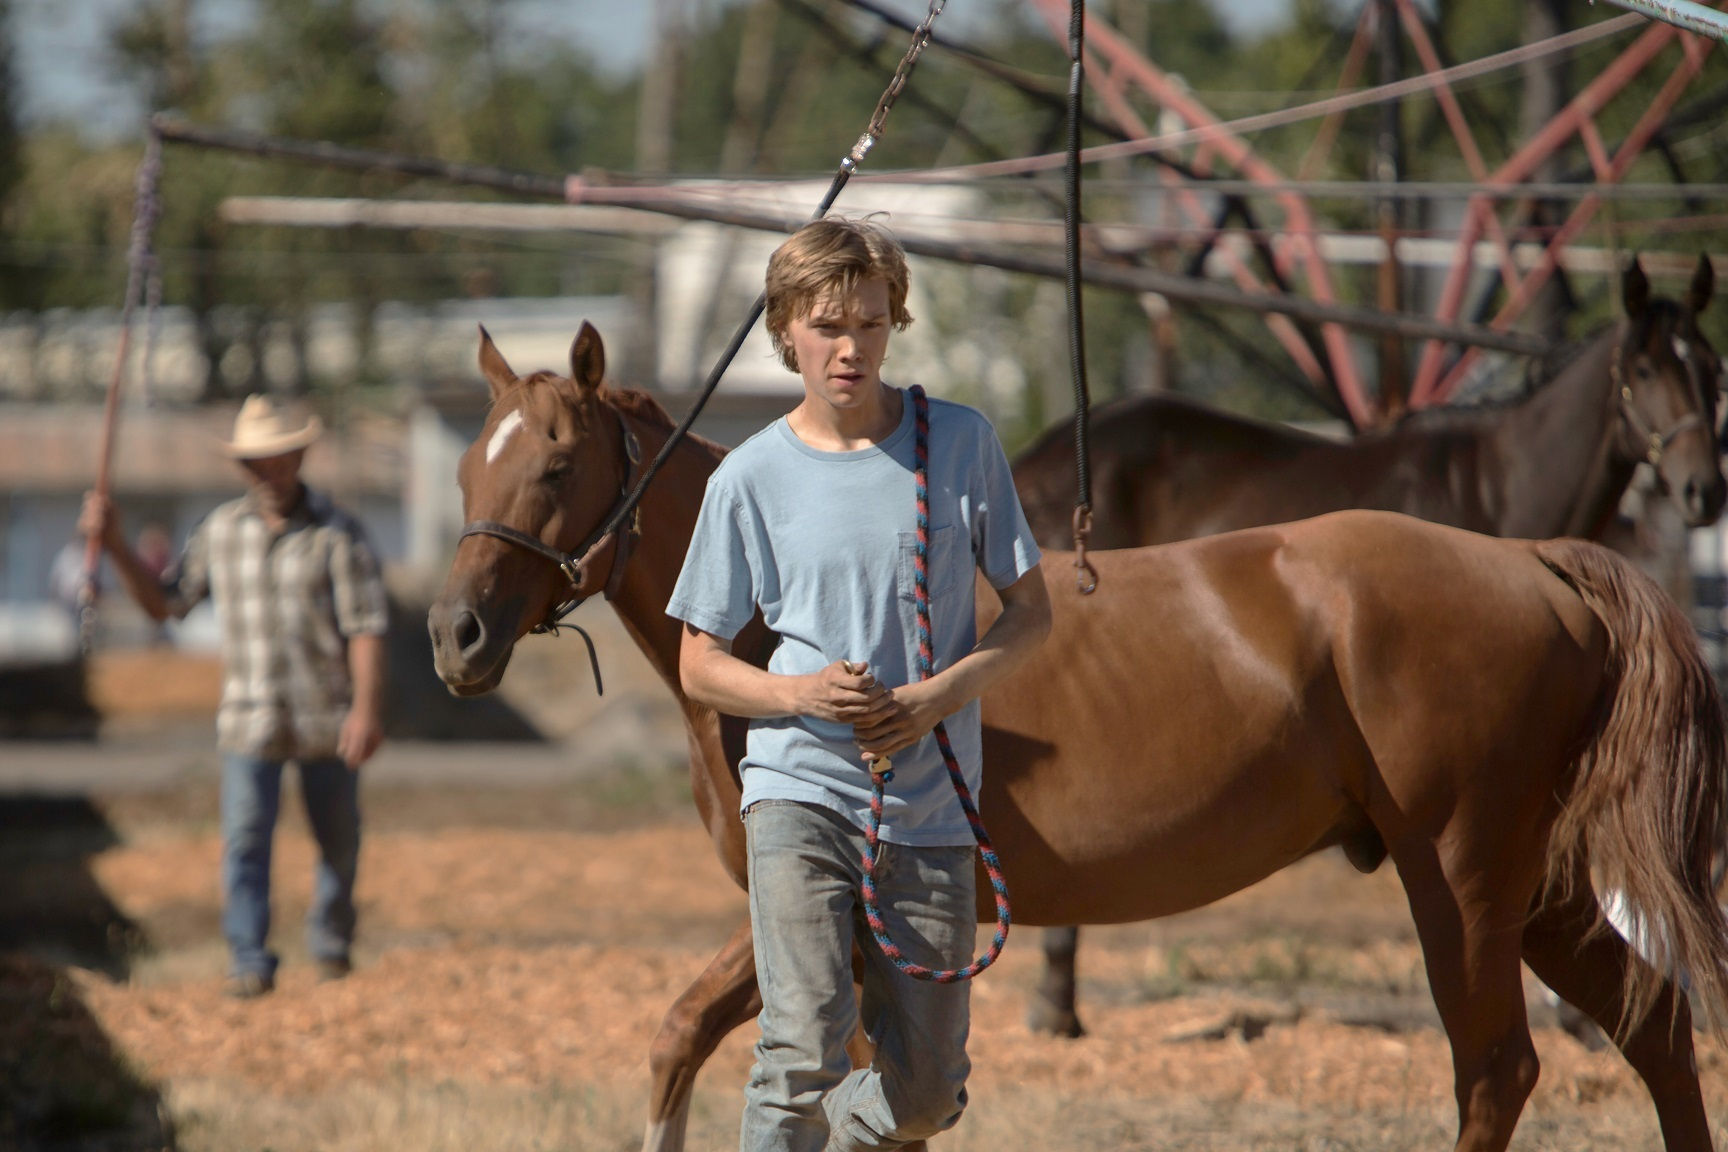 Charley (Charlie Plummer) in Lean On Pete